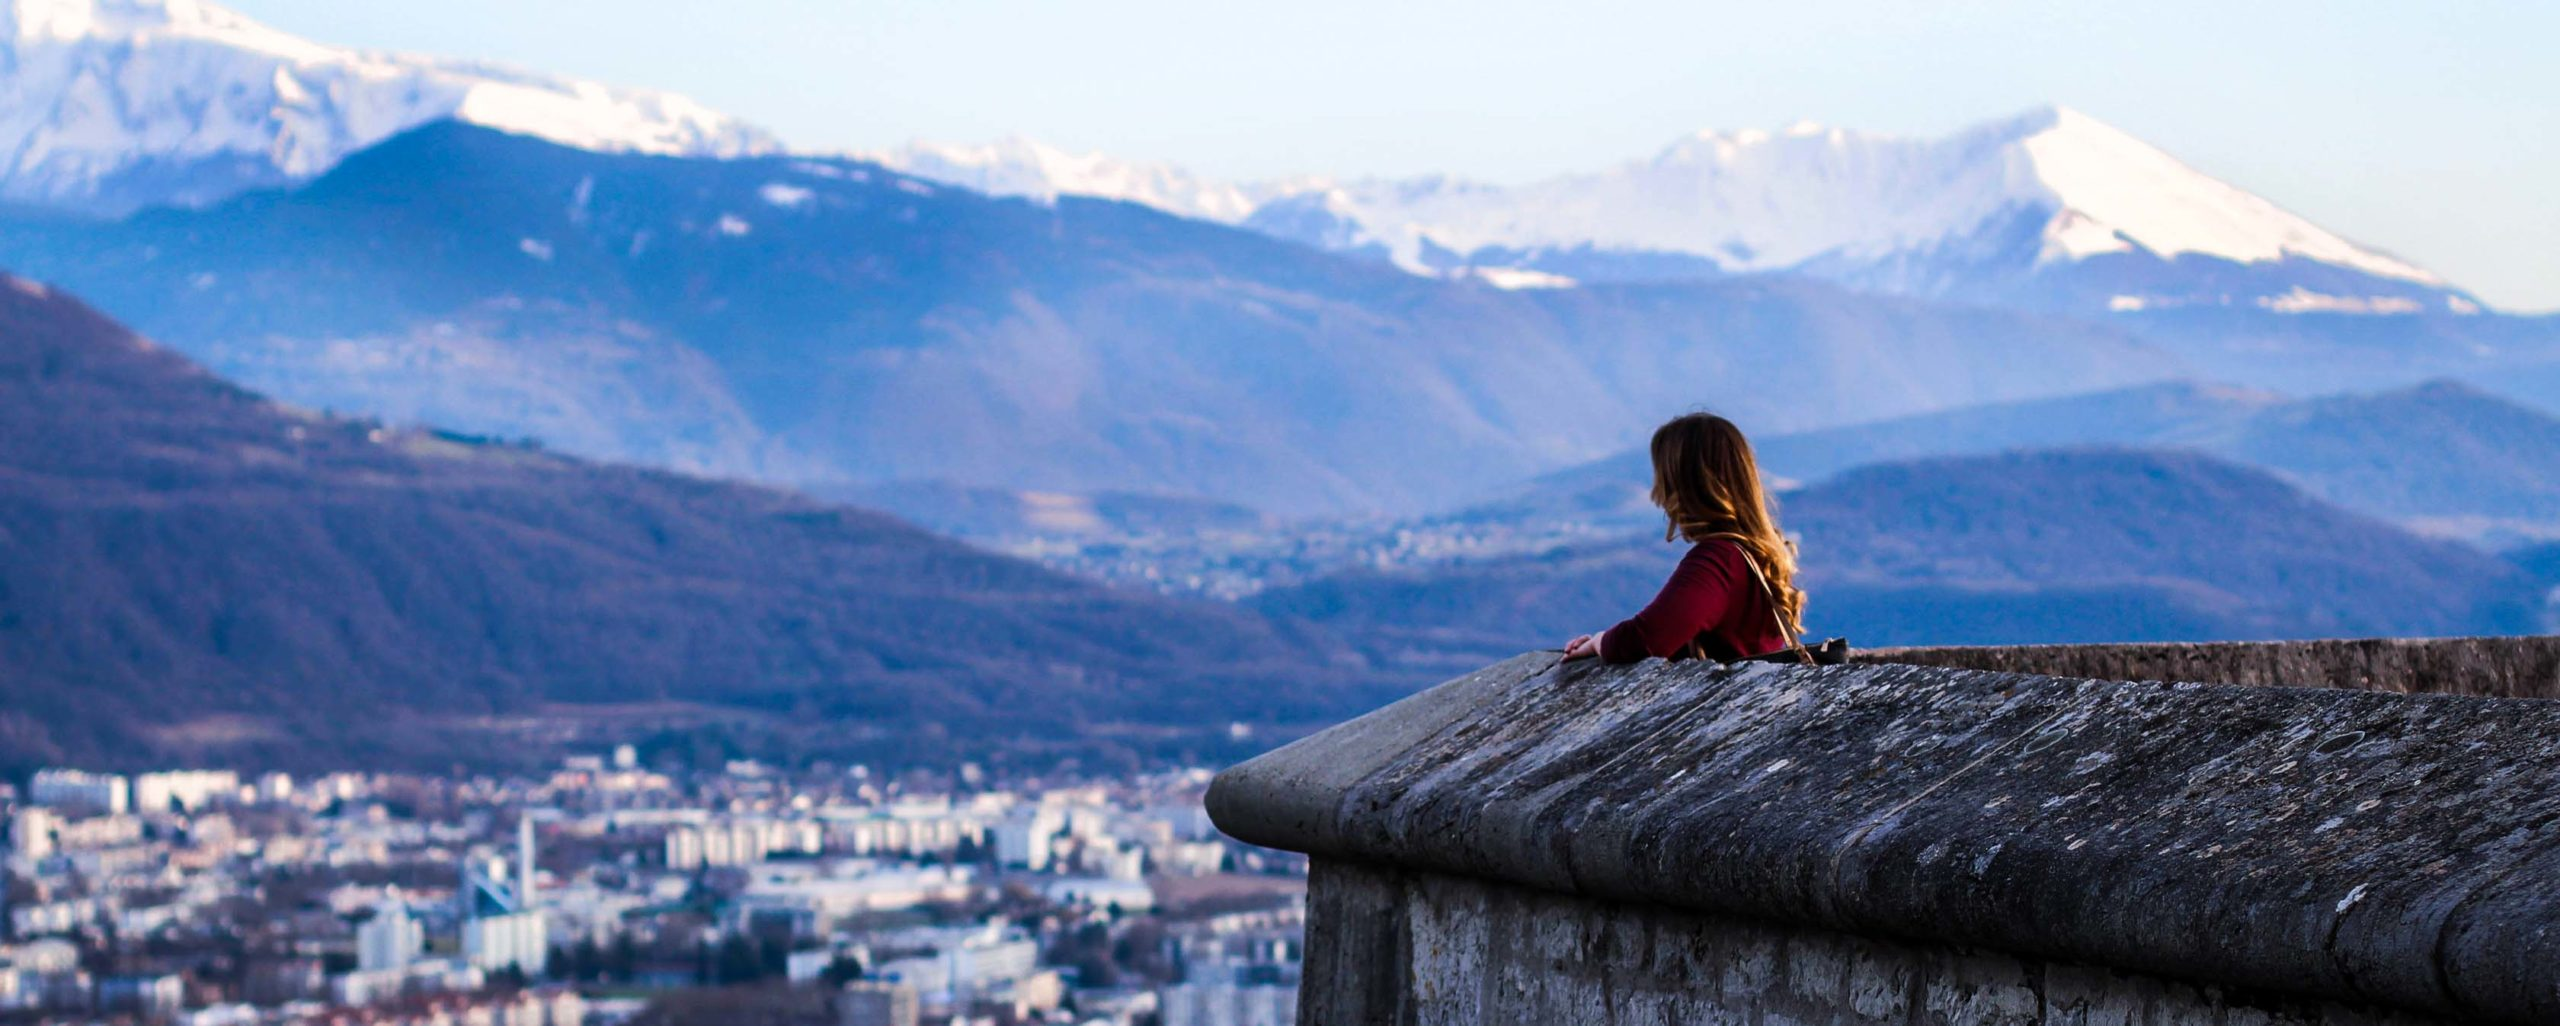 Woman overlooks city from top of building